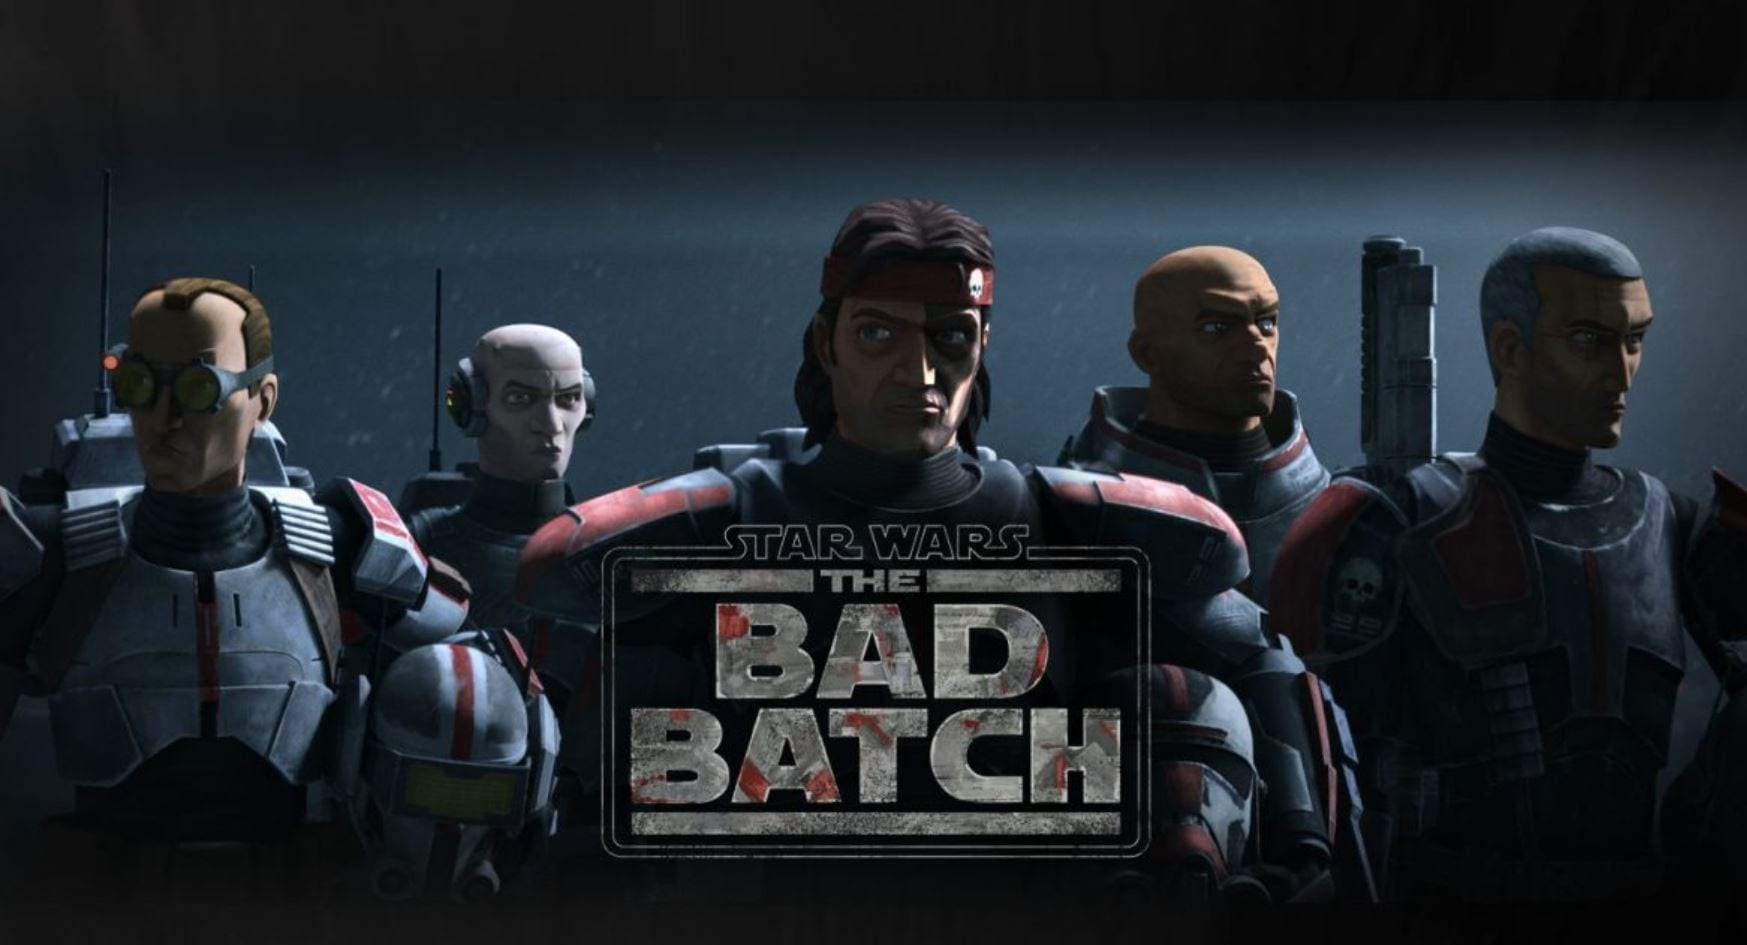 Where to Watch Star Wars: The Bad Batch?